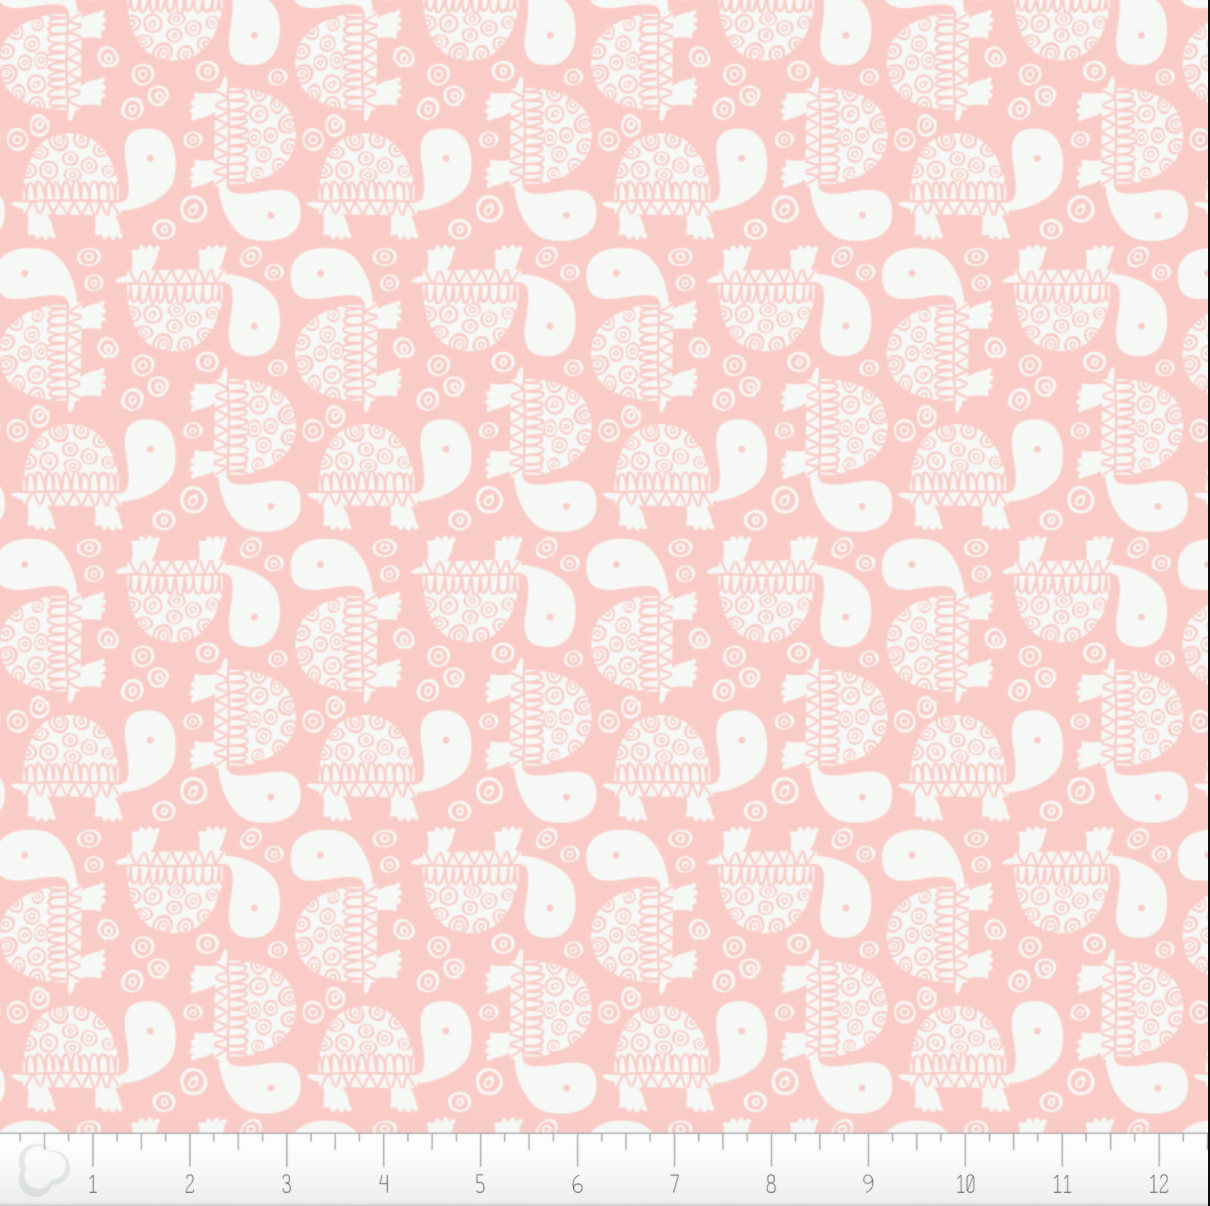 Turtles in Pink from the Wild One fabric collection by Andrea Turk for Camelot Fabrics